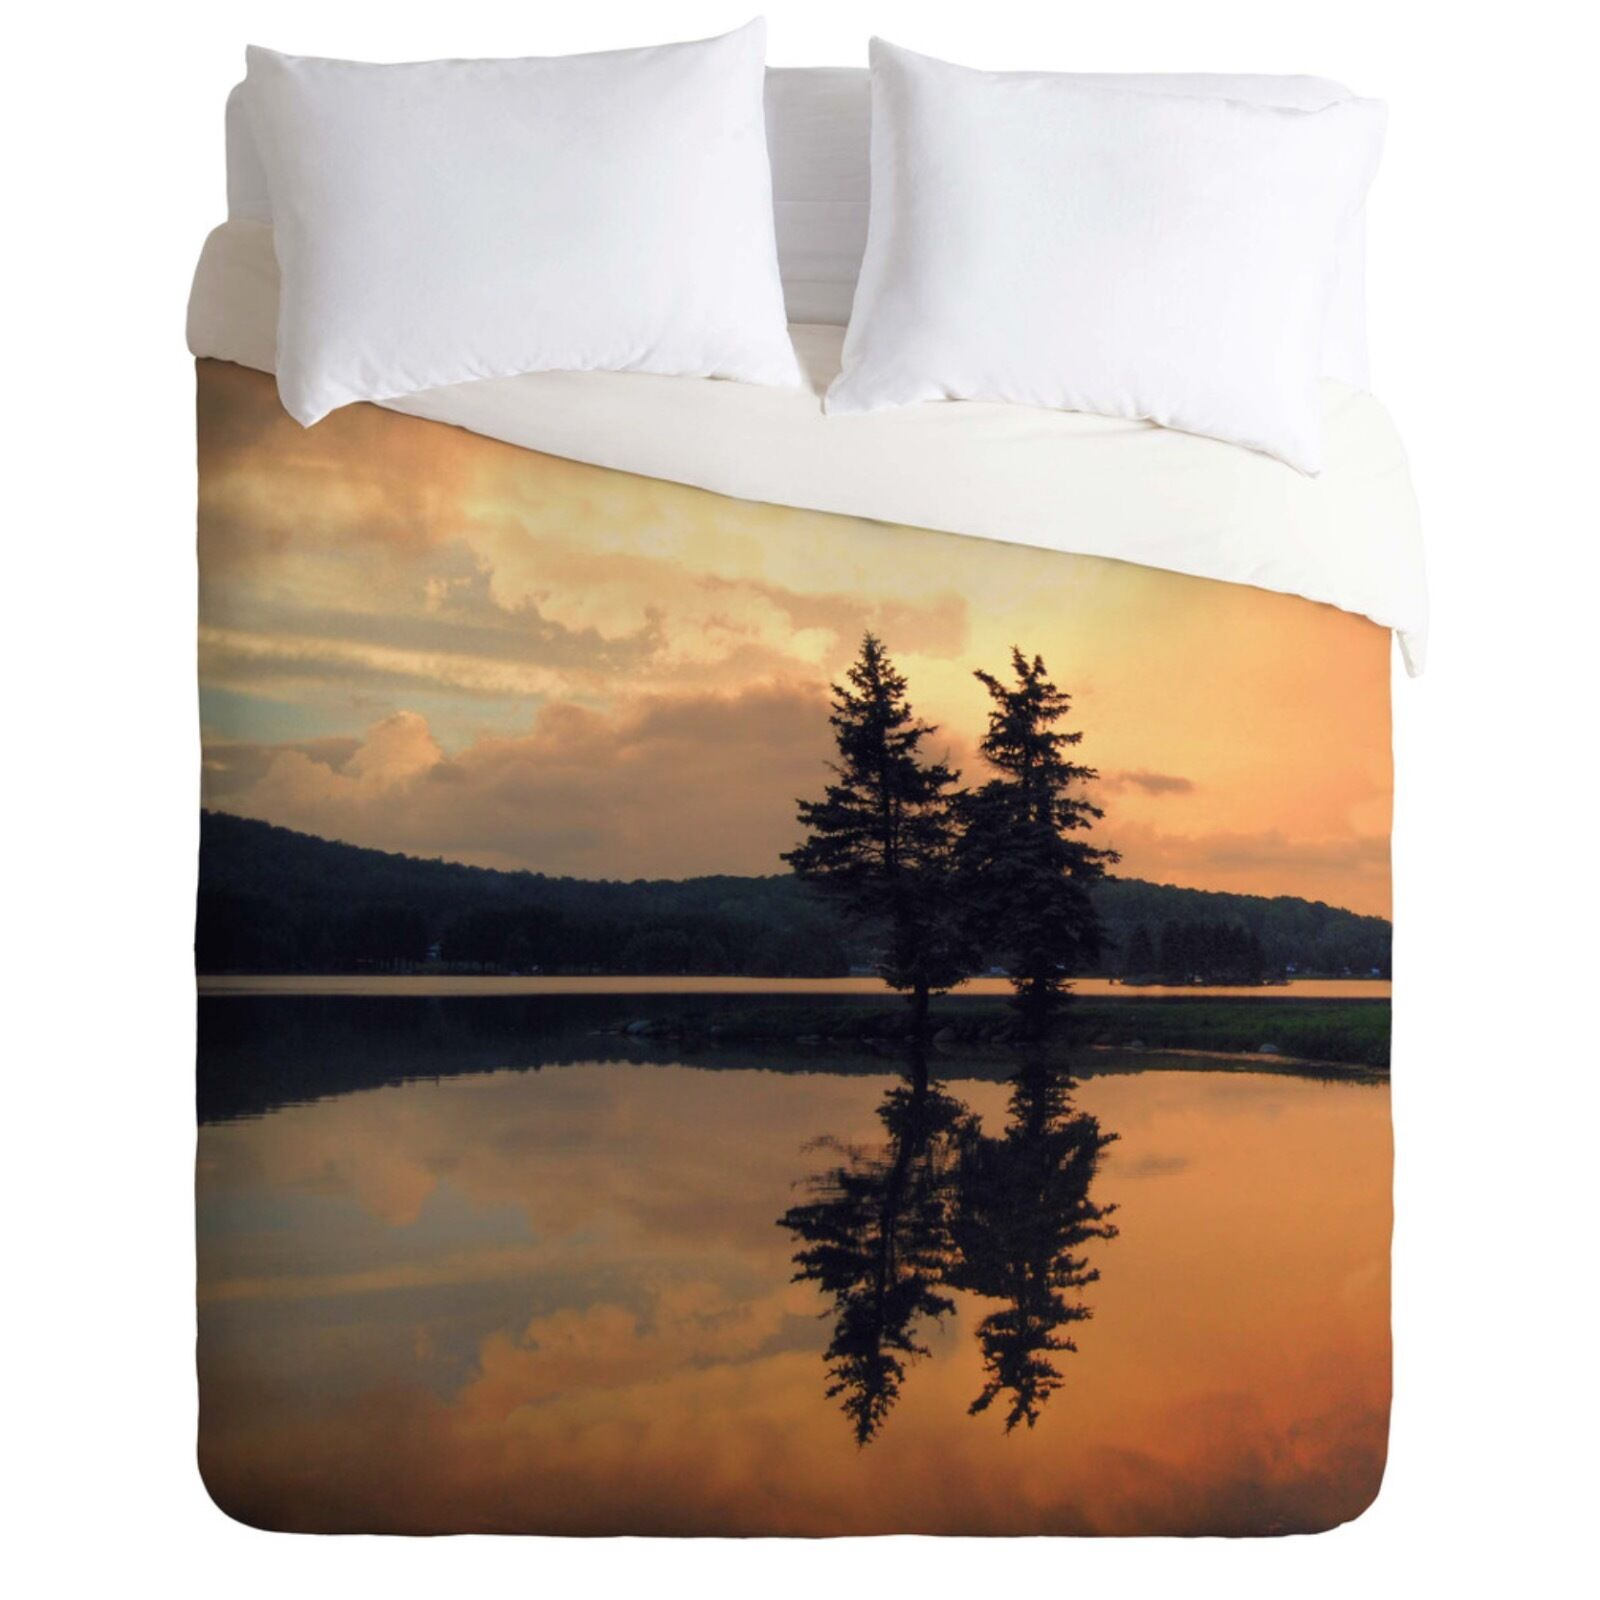 DENY Designs Chelsea Victoria The River Lightweight Duvet Cover